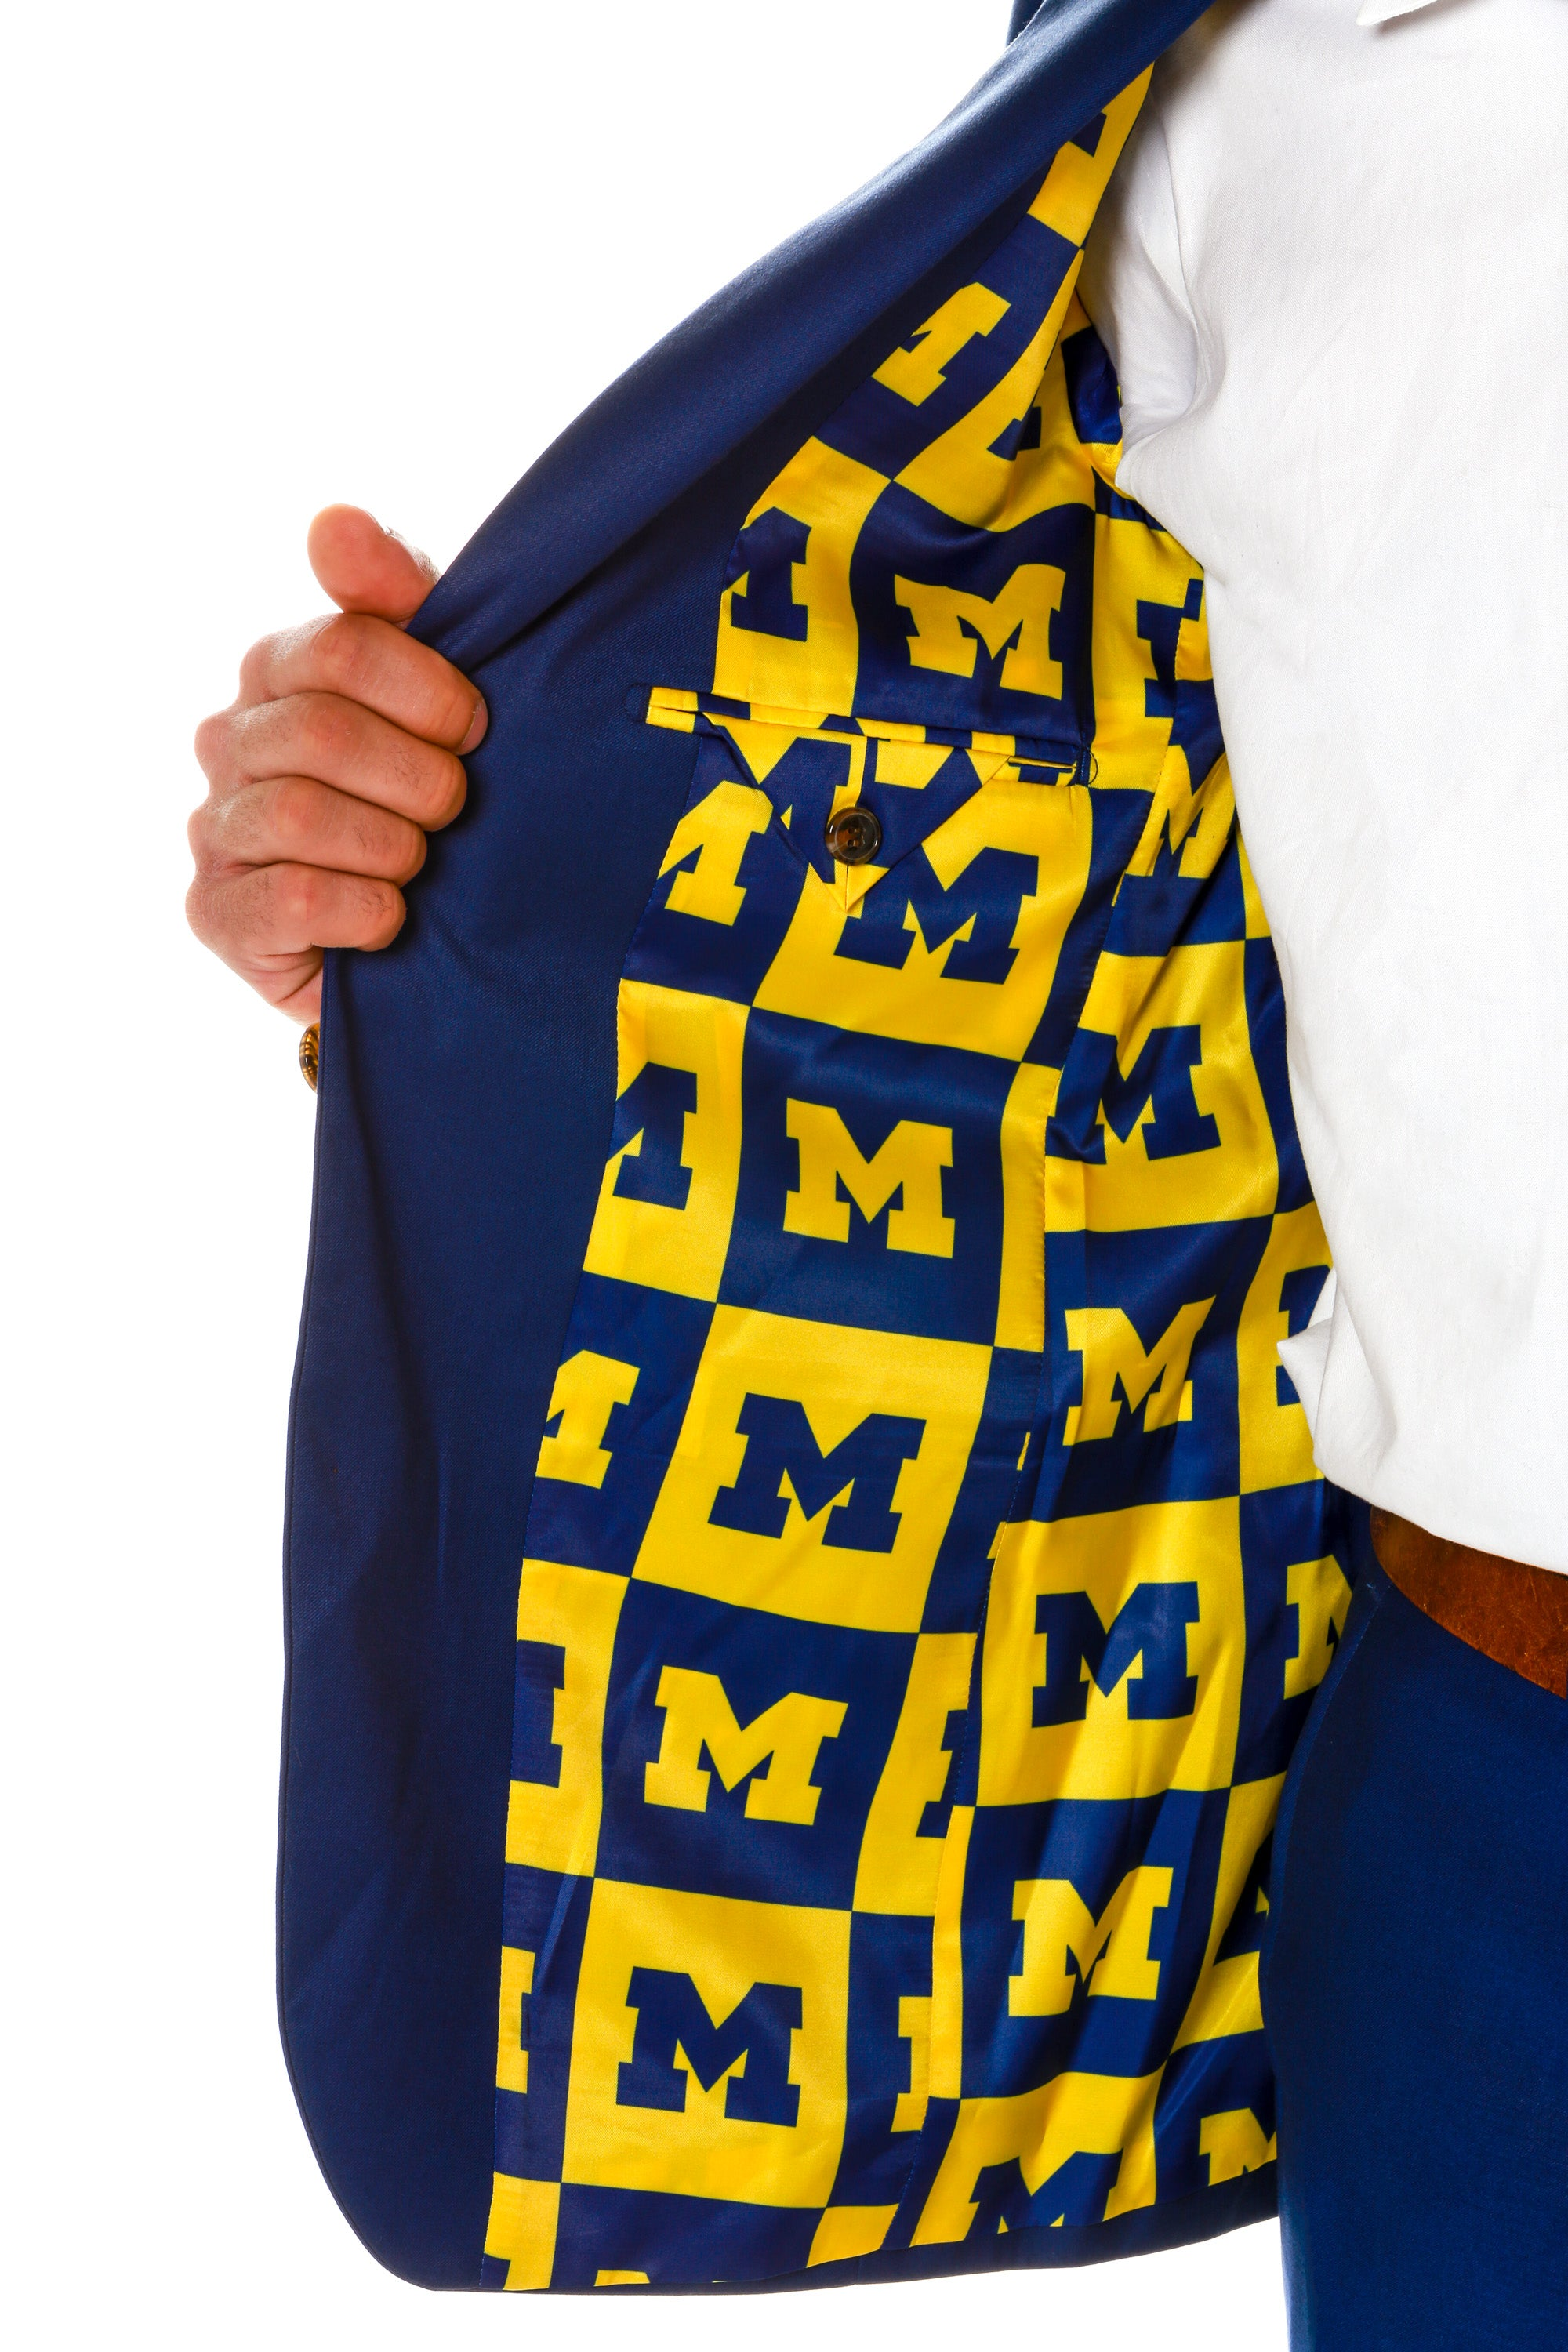 U of M mens blazer